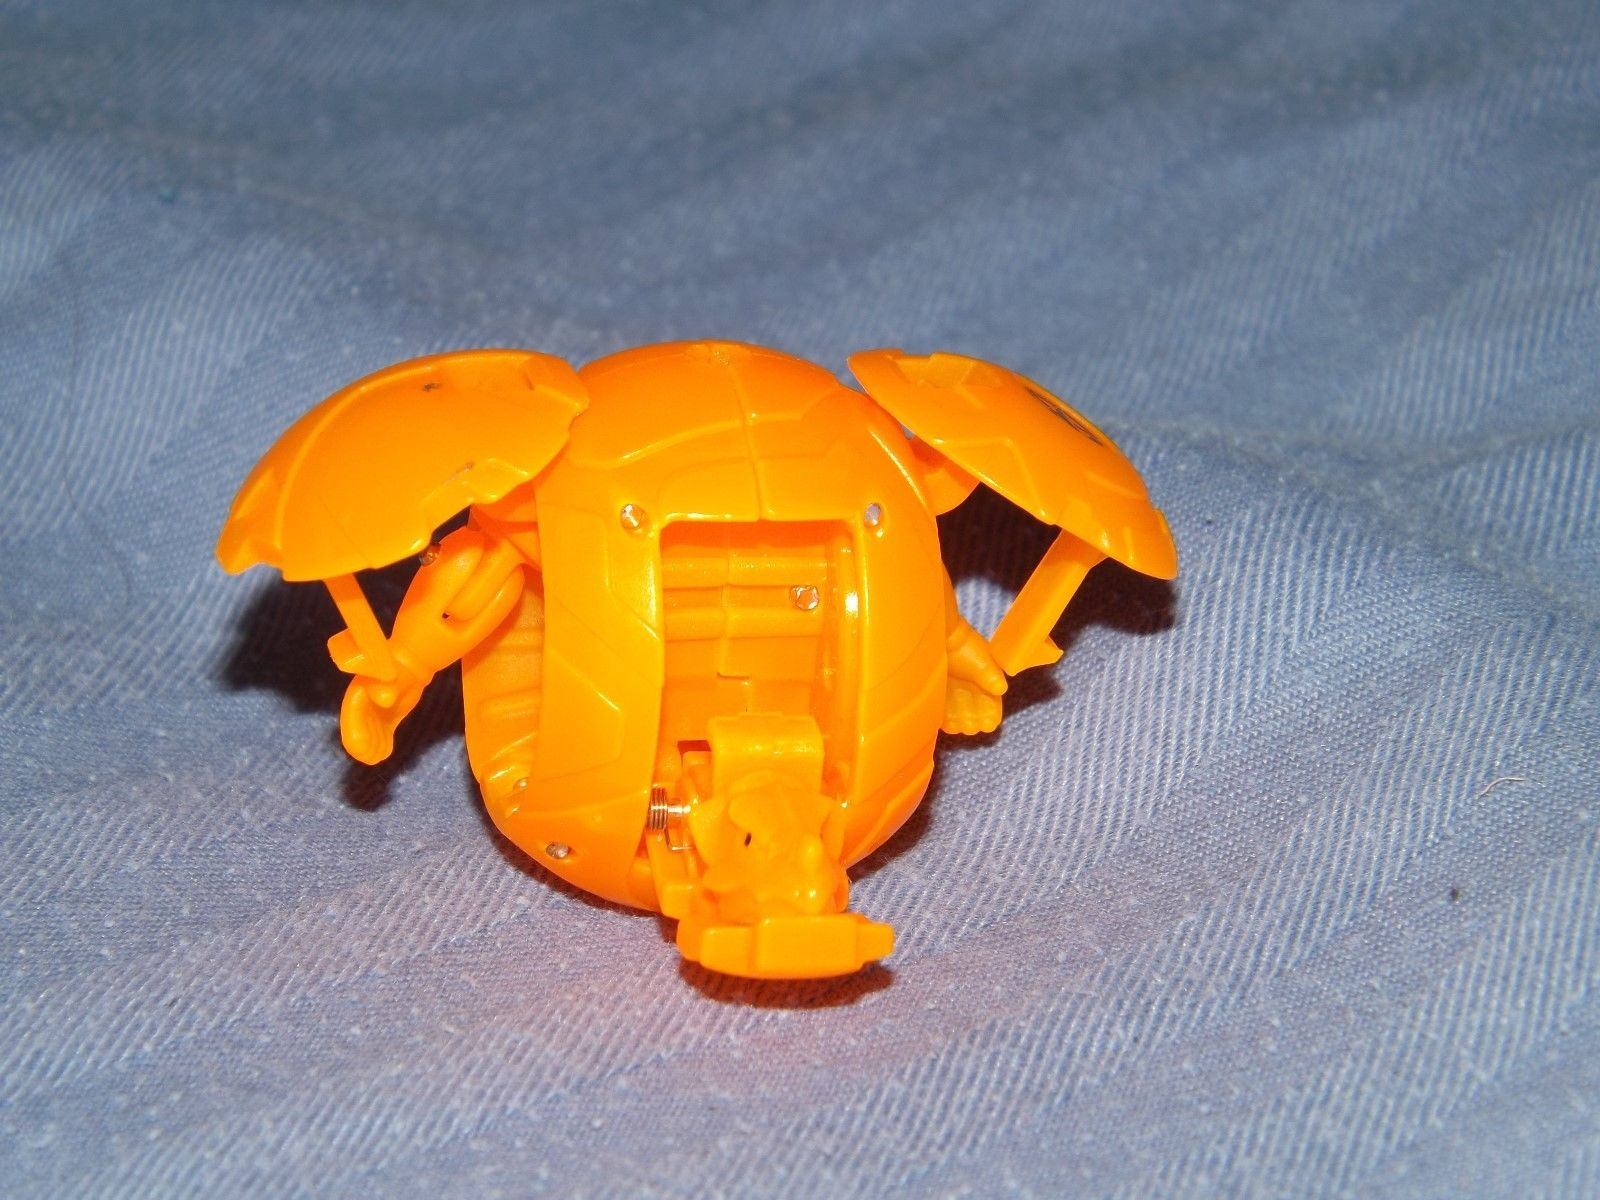 Umm, is this a fake bakugan or is it rare